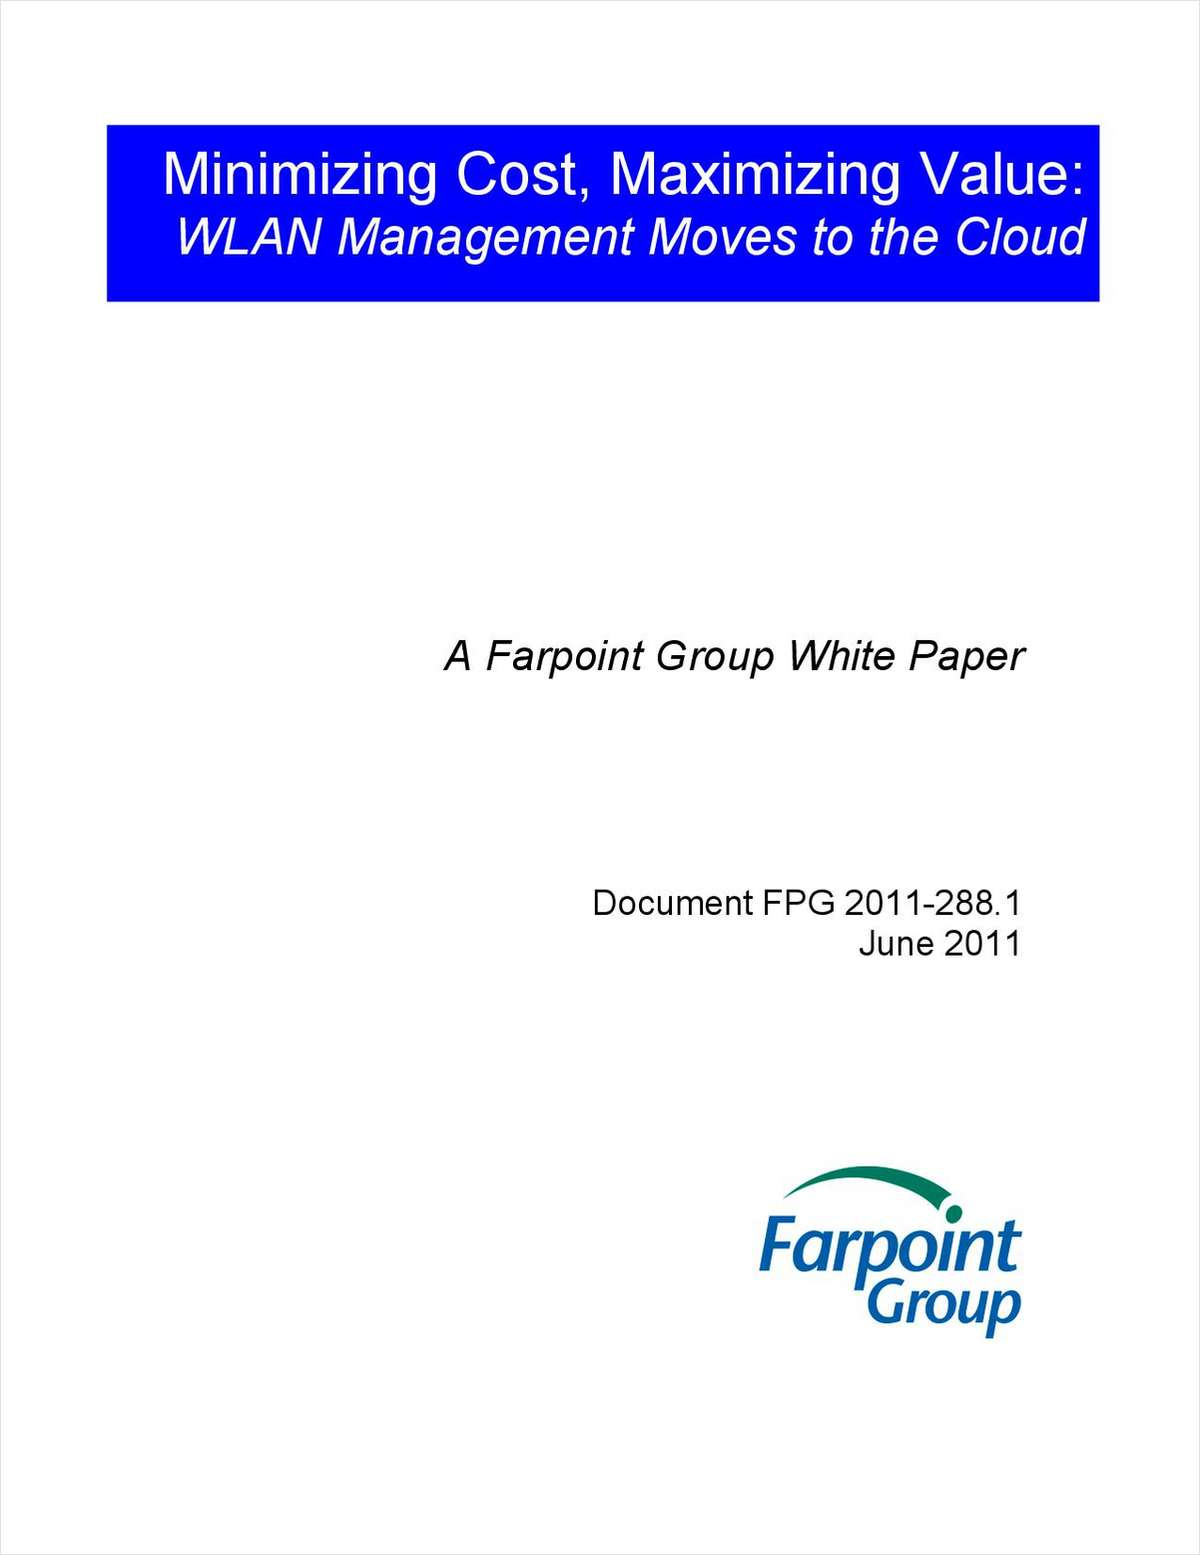 Minimizing Cost, Maximizing Value: WLAN Management Moves to the Cloud